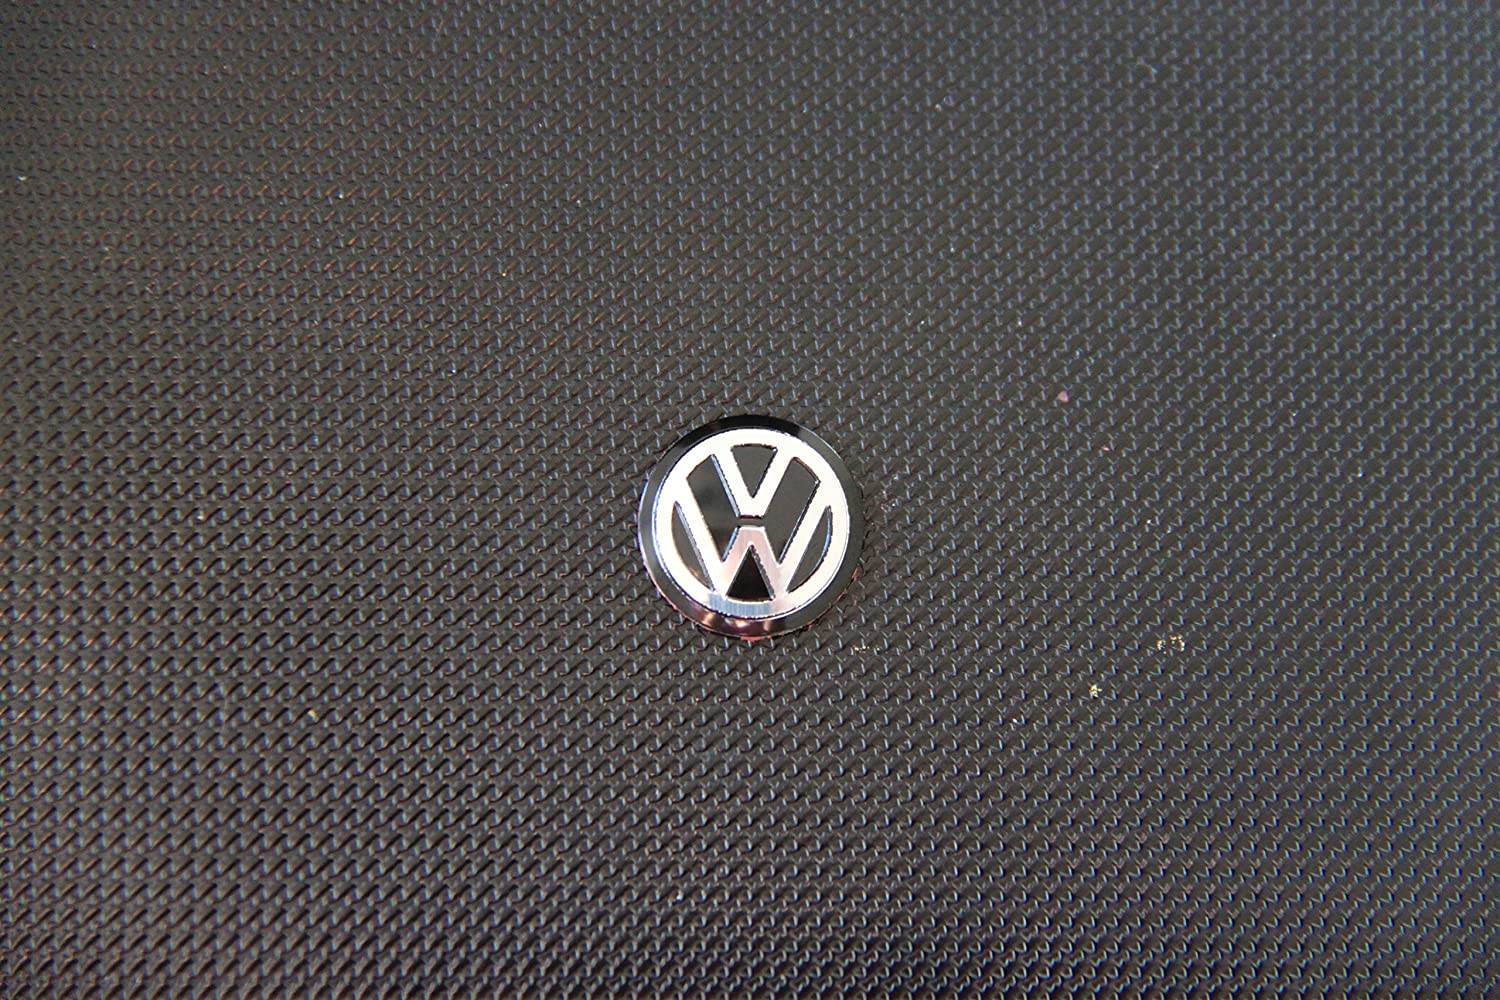 Four vw key fob metallic badge logo stickers  blue //white  14mm